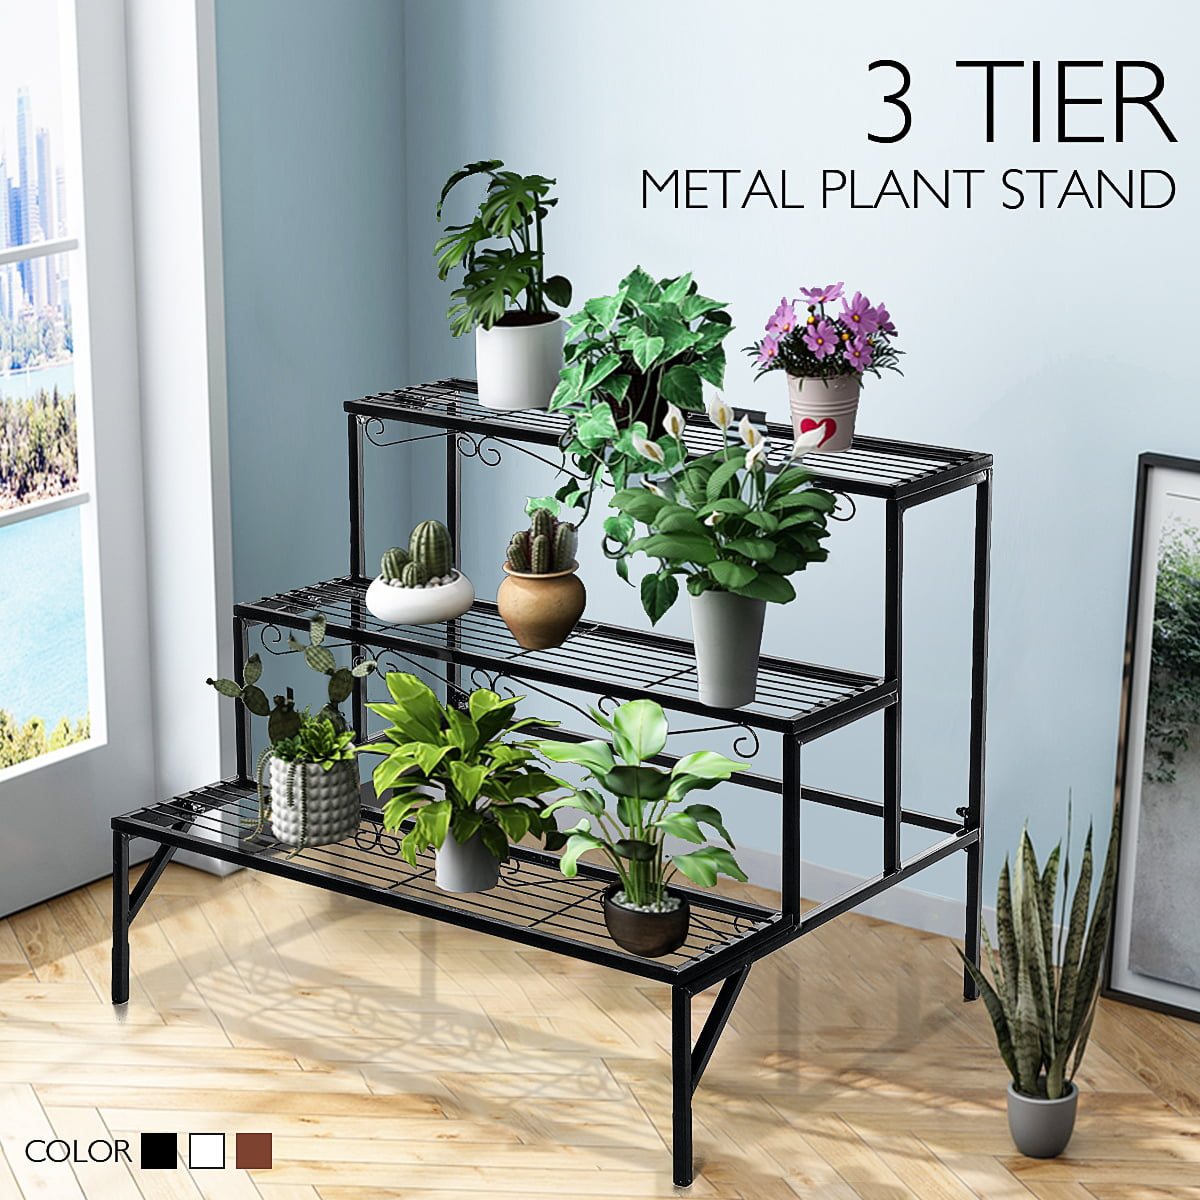 3 Tier Plant Stand Flower Stand Indoor Outdoor Metal Stands For Multiple Plants Ladder Potted Shelf Holder Rack Walmart Com Walmart Com